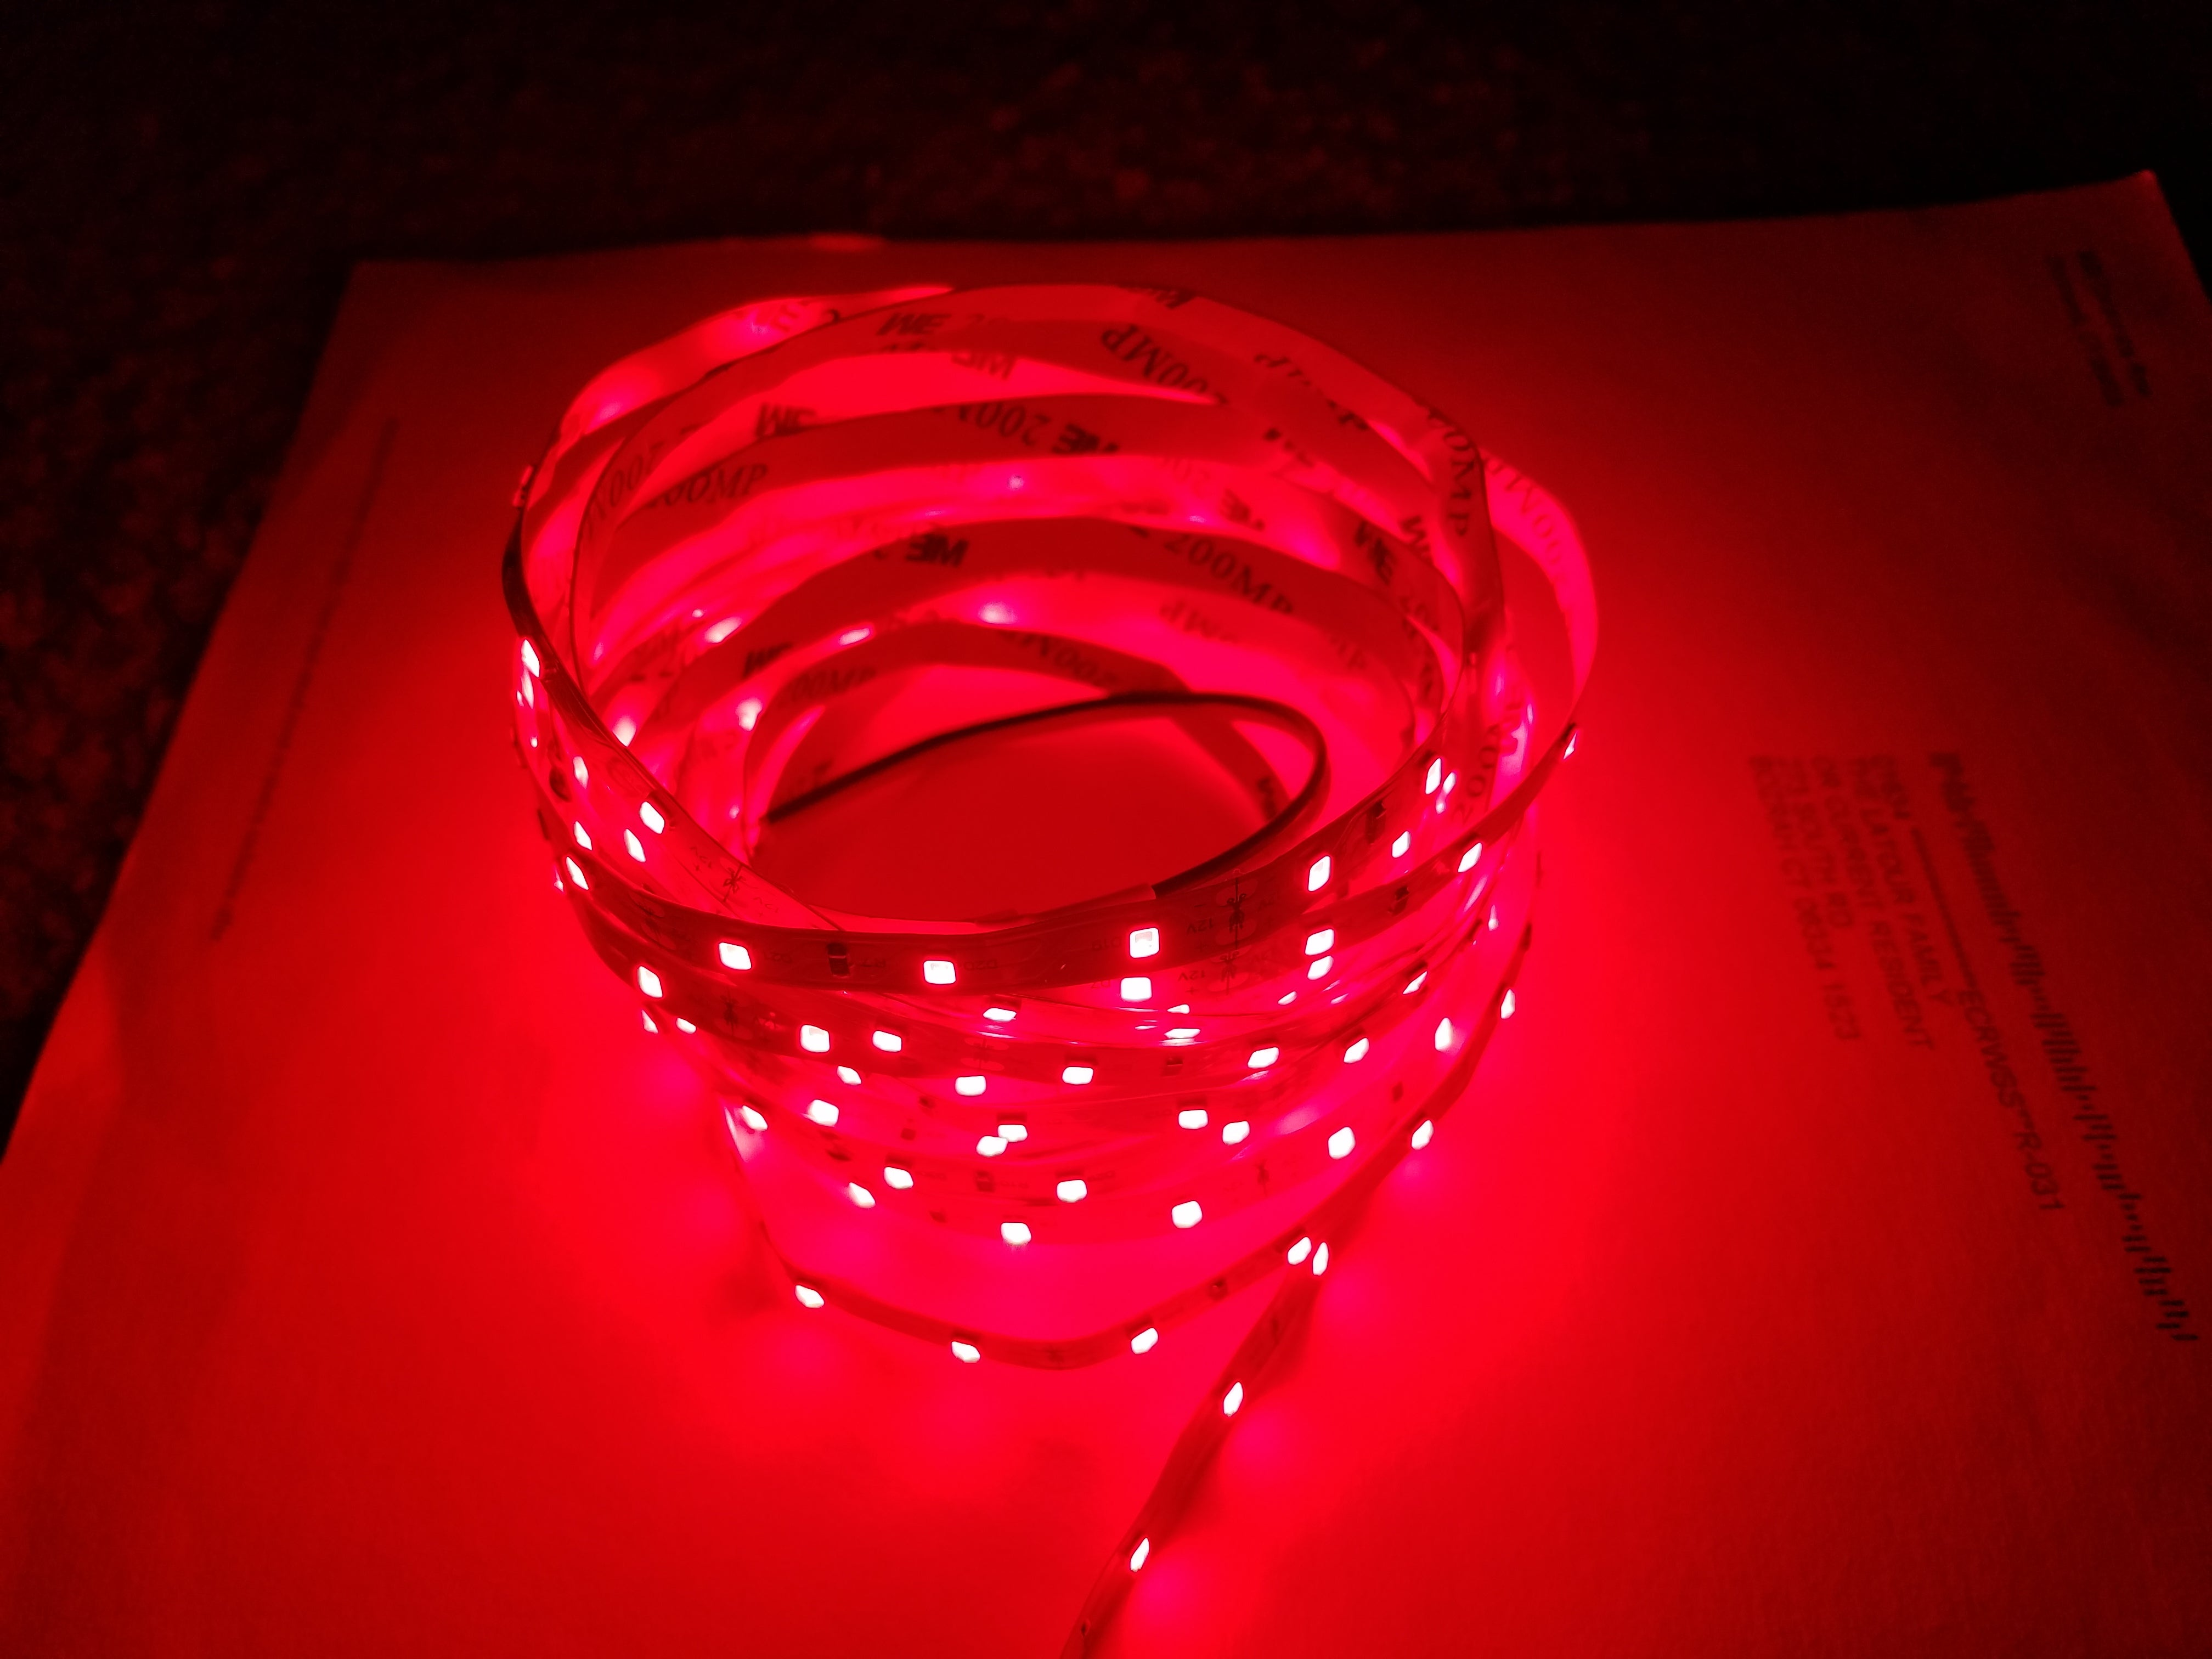 GembaRed Wheel Red 660nm 12 volt LED Strip Light